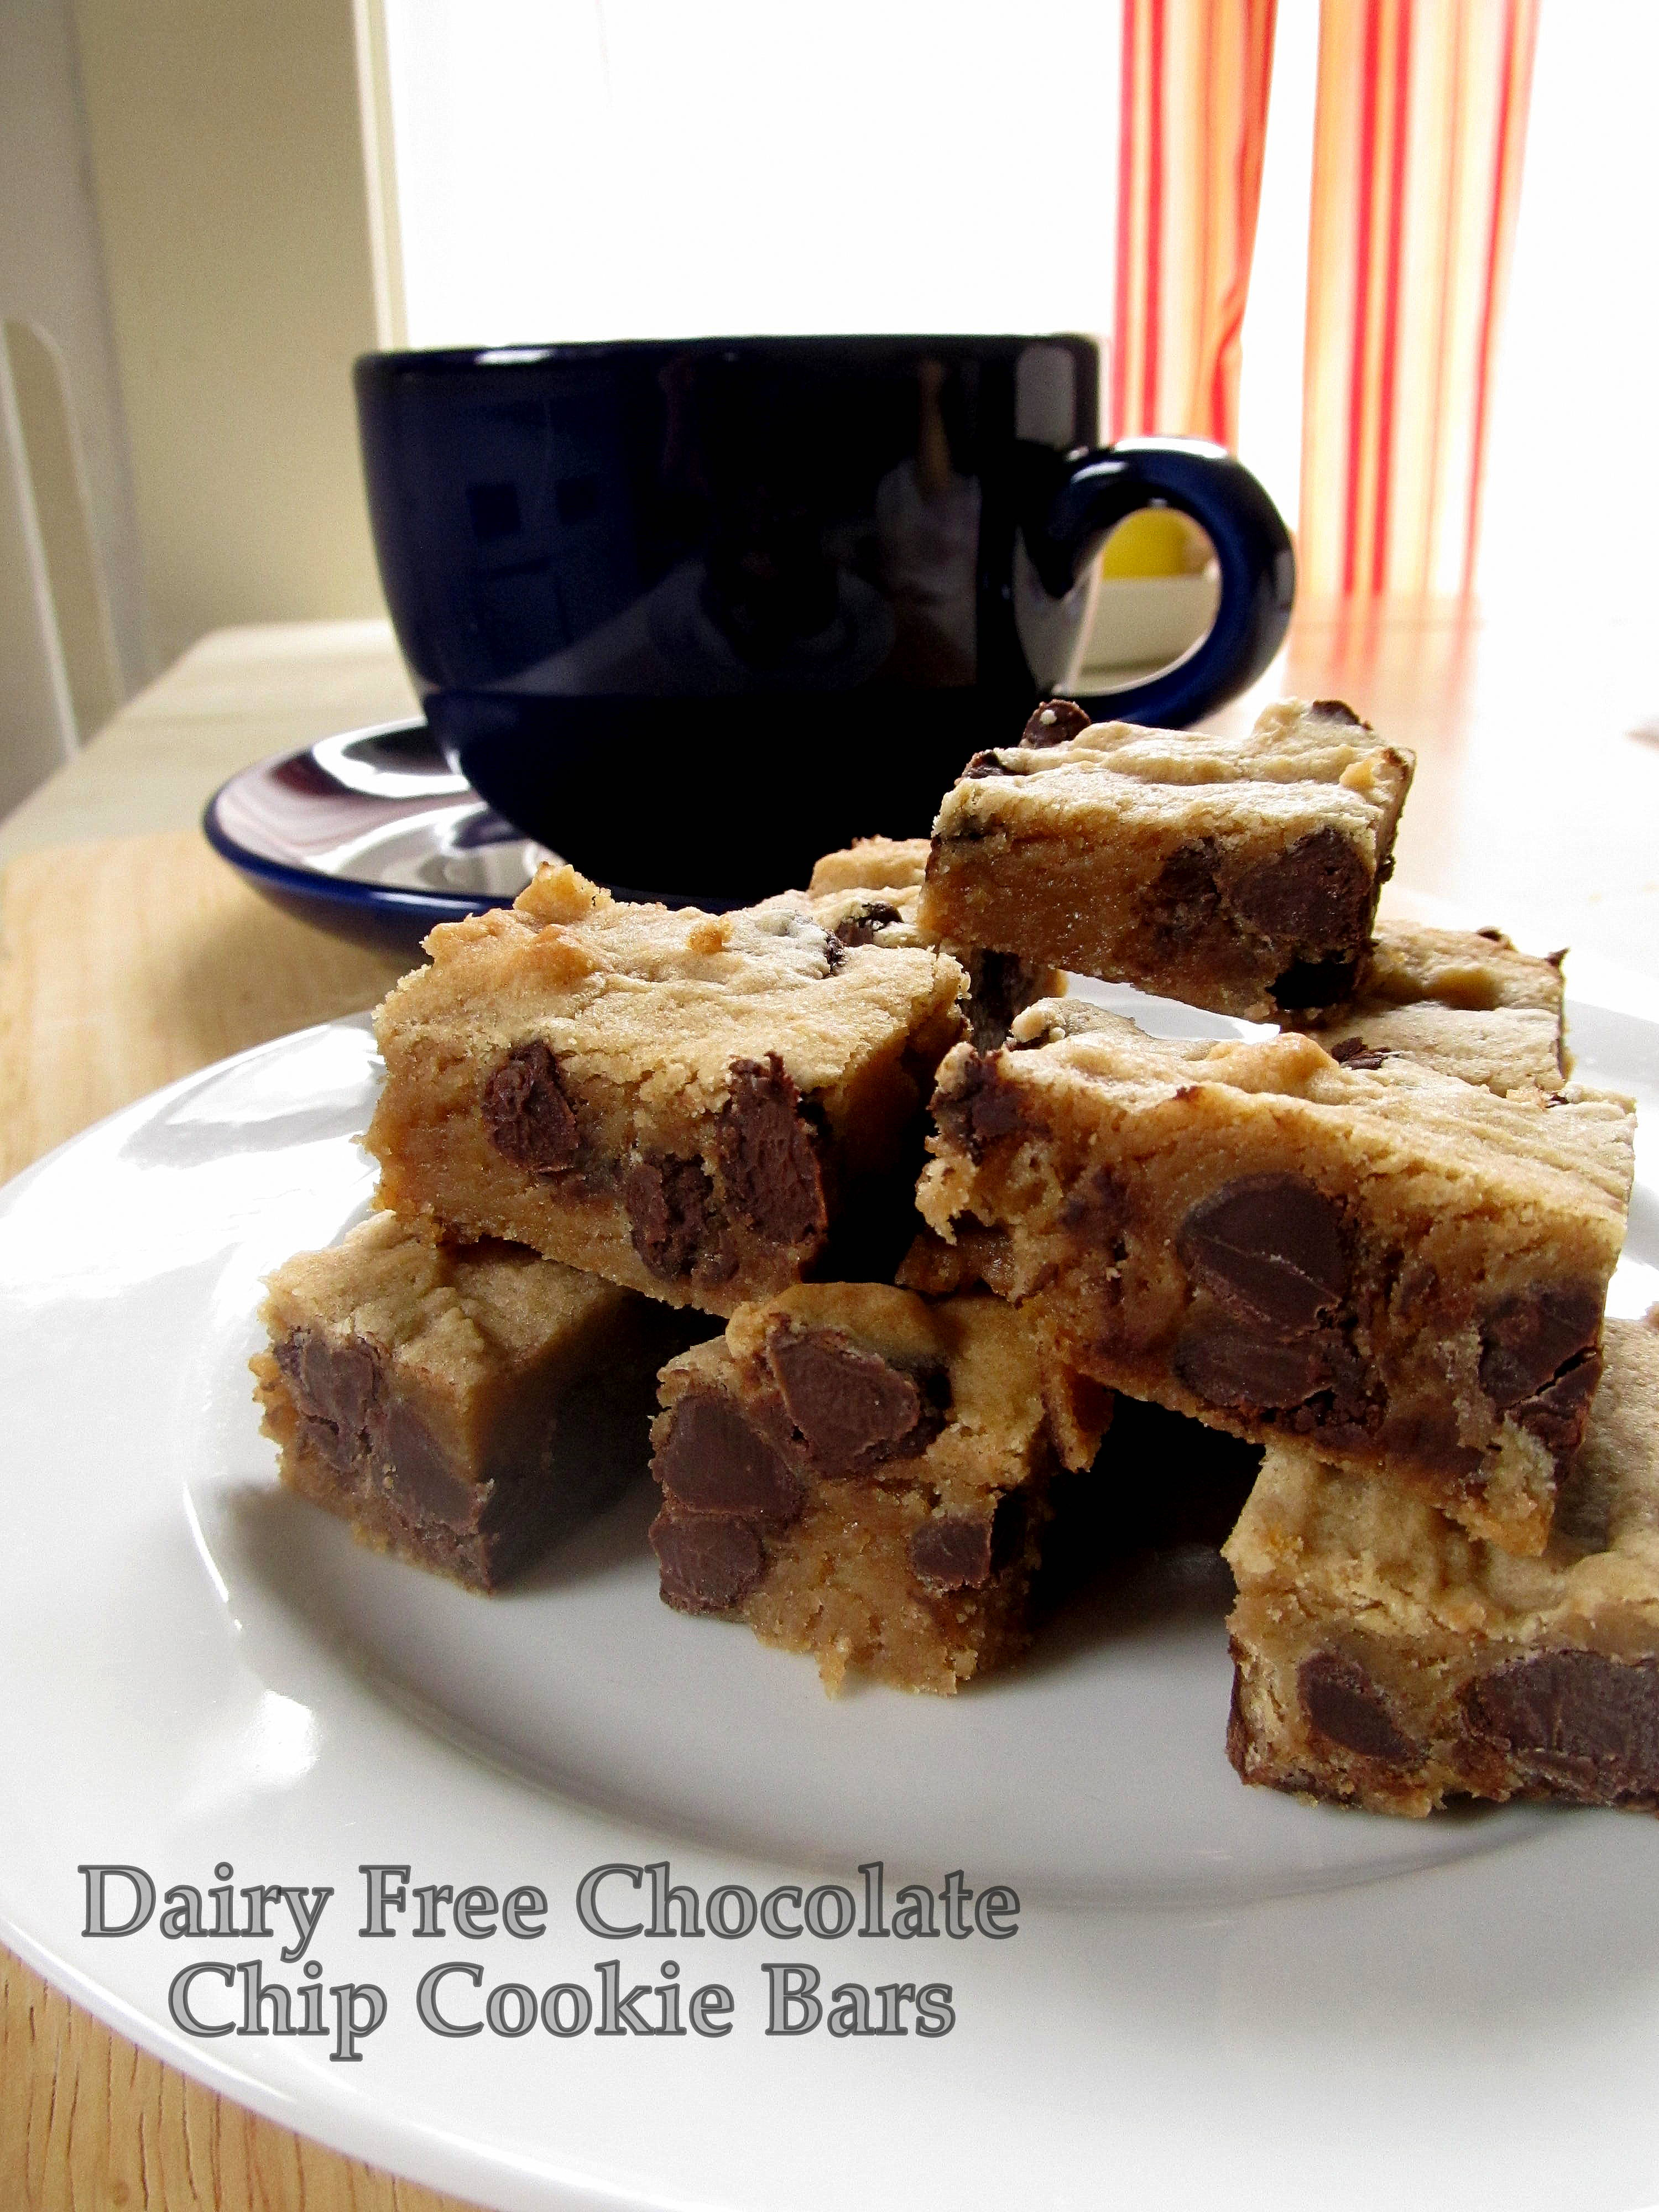 Teacher Cooks Edition! Dairy Free Chocolate Chip Cookie Bars ...